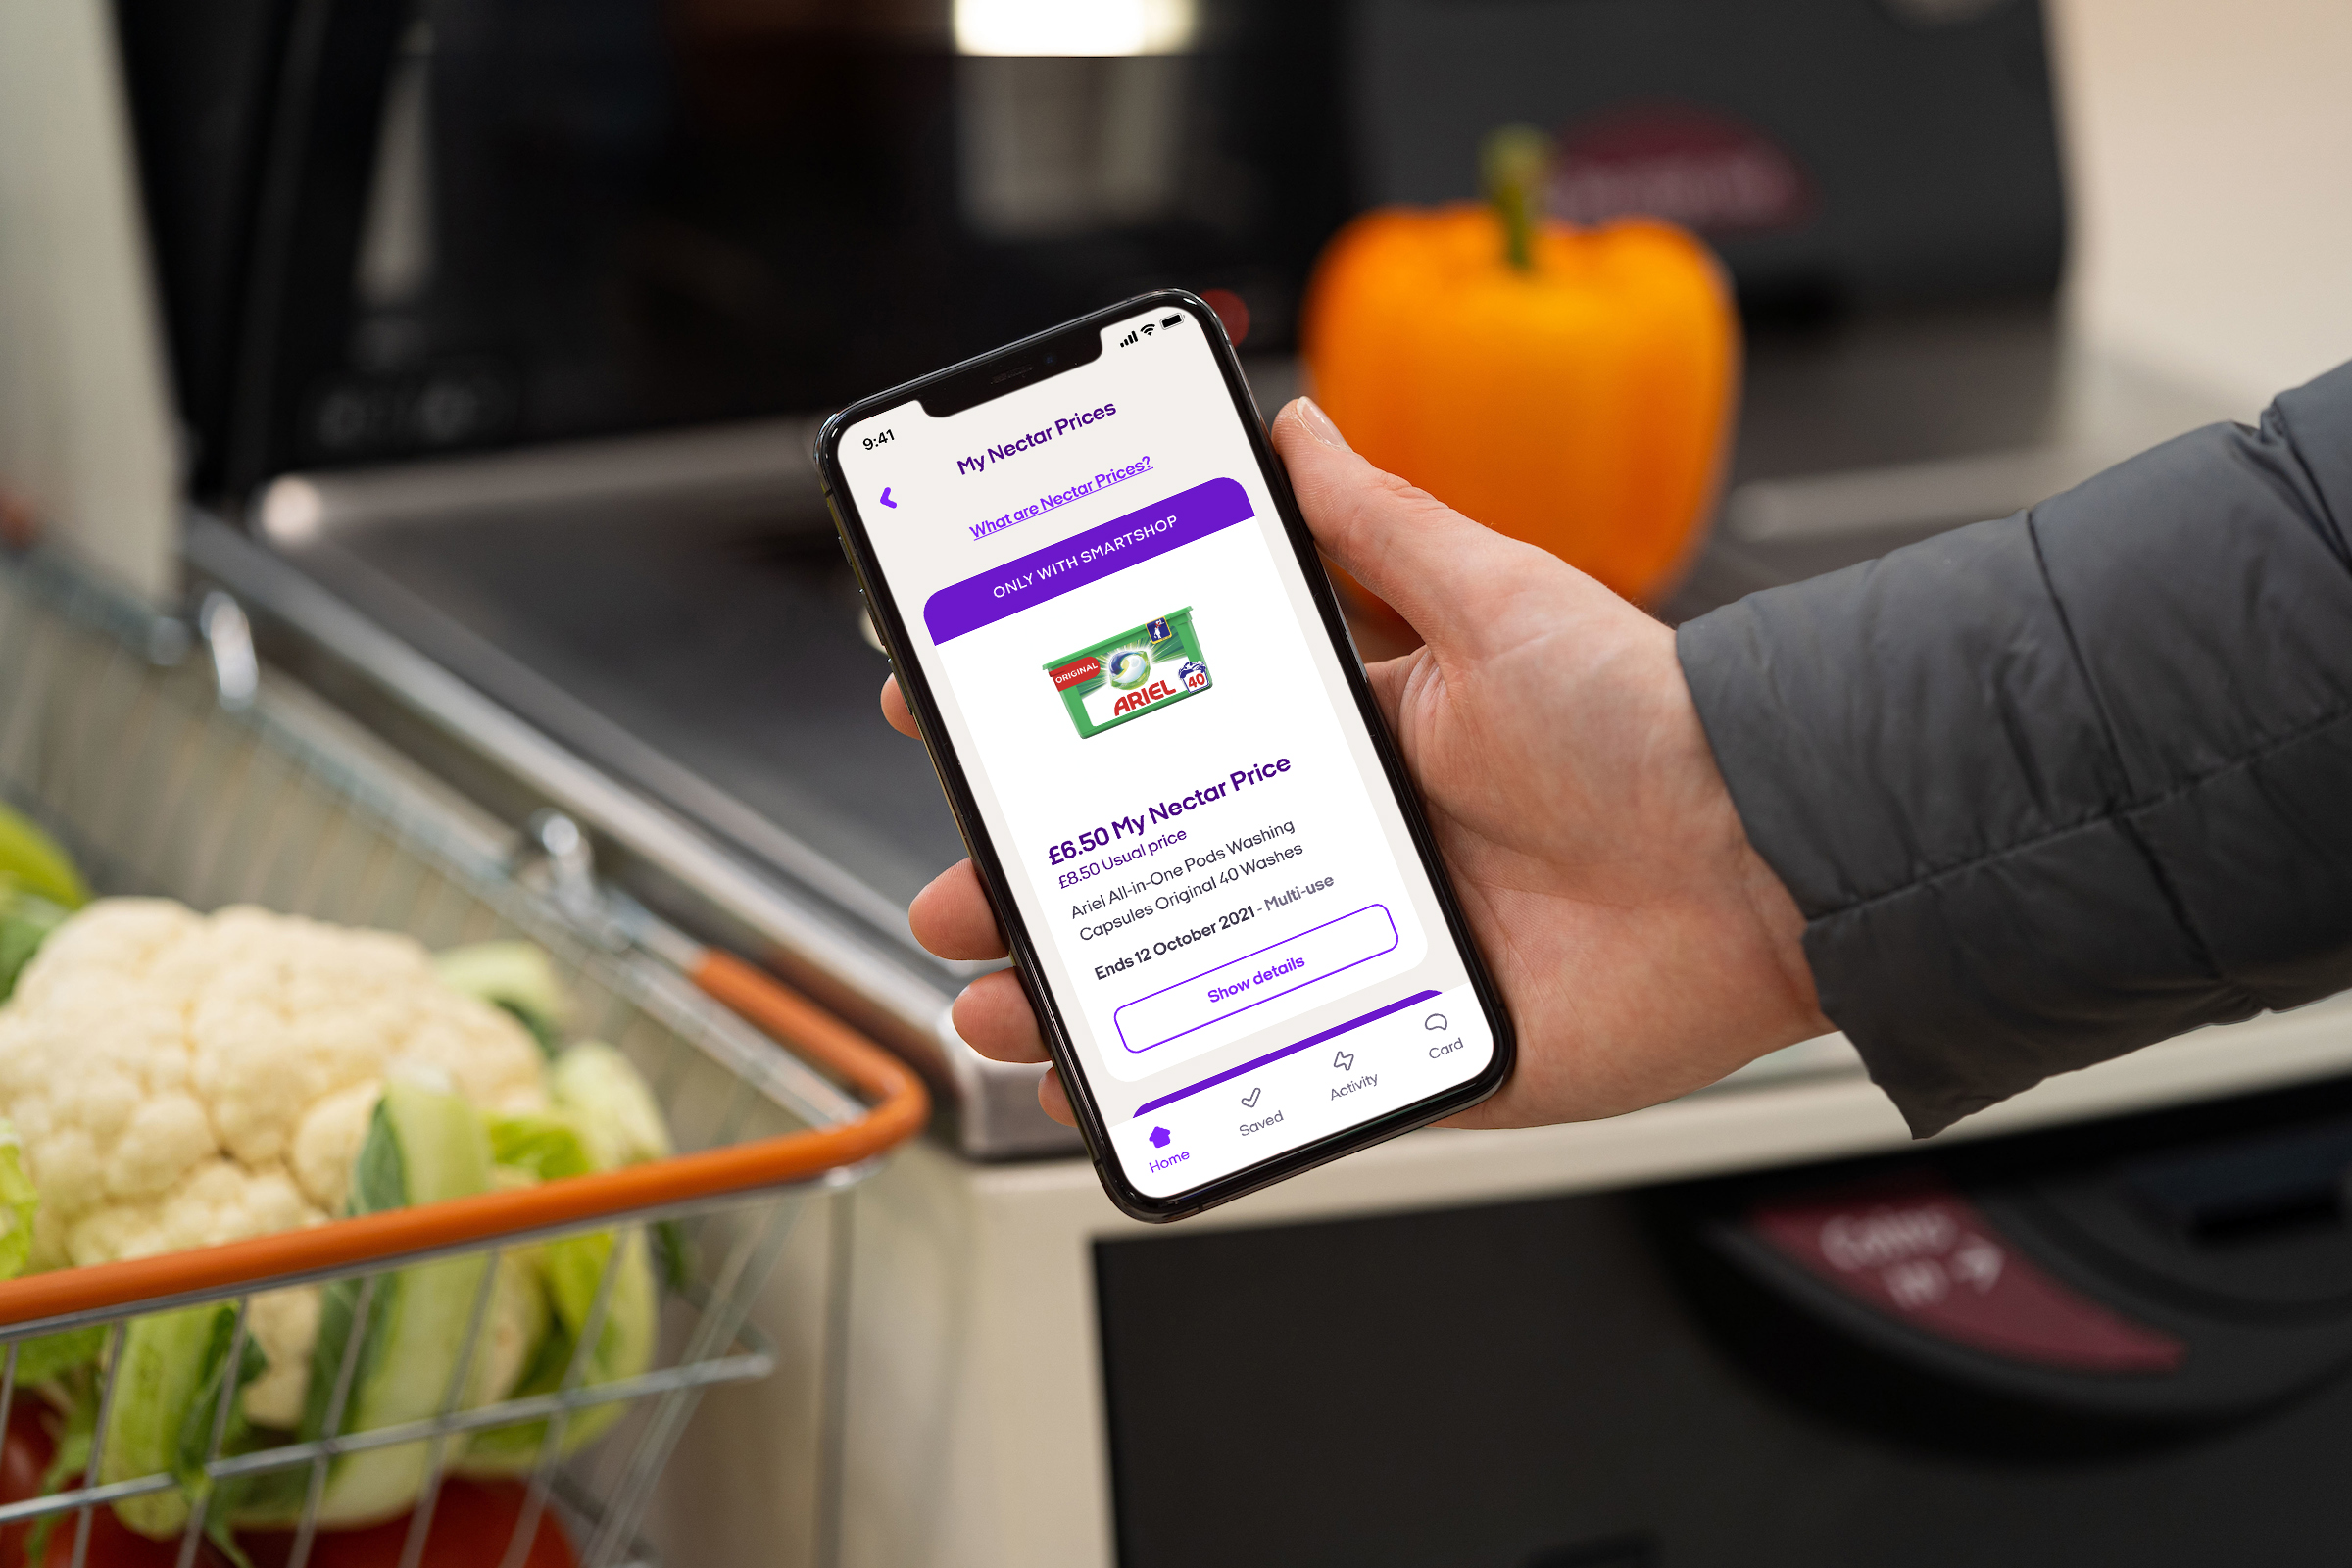 Nectar card holders can now get personalised discounts when they shop using Sainsbury's 'scan and go' service in stores